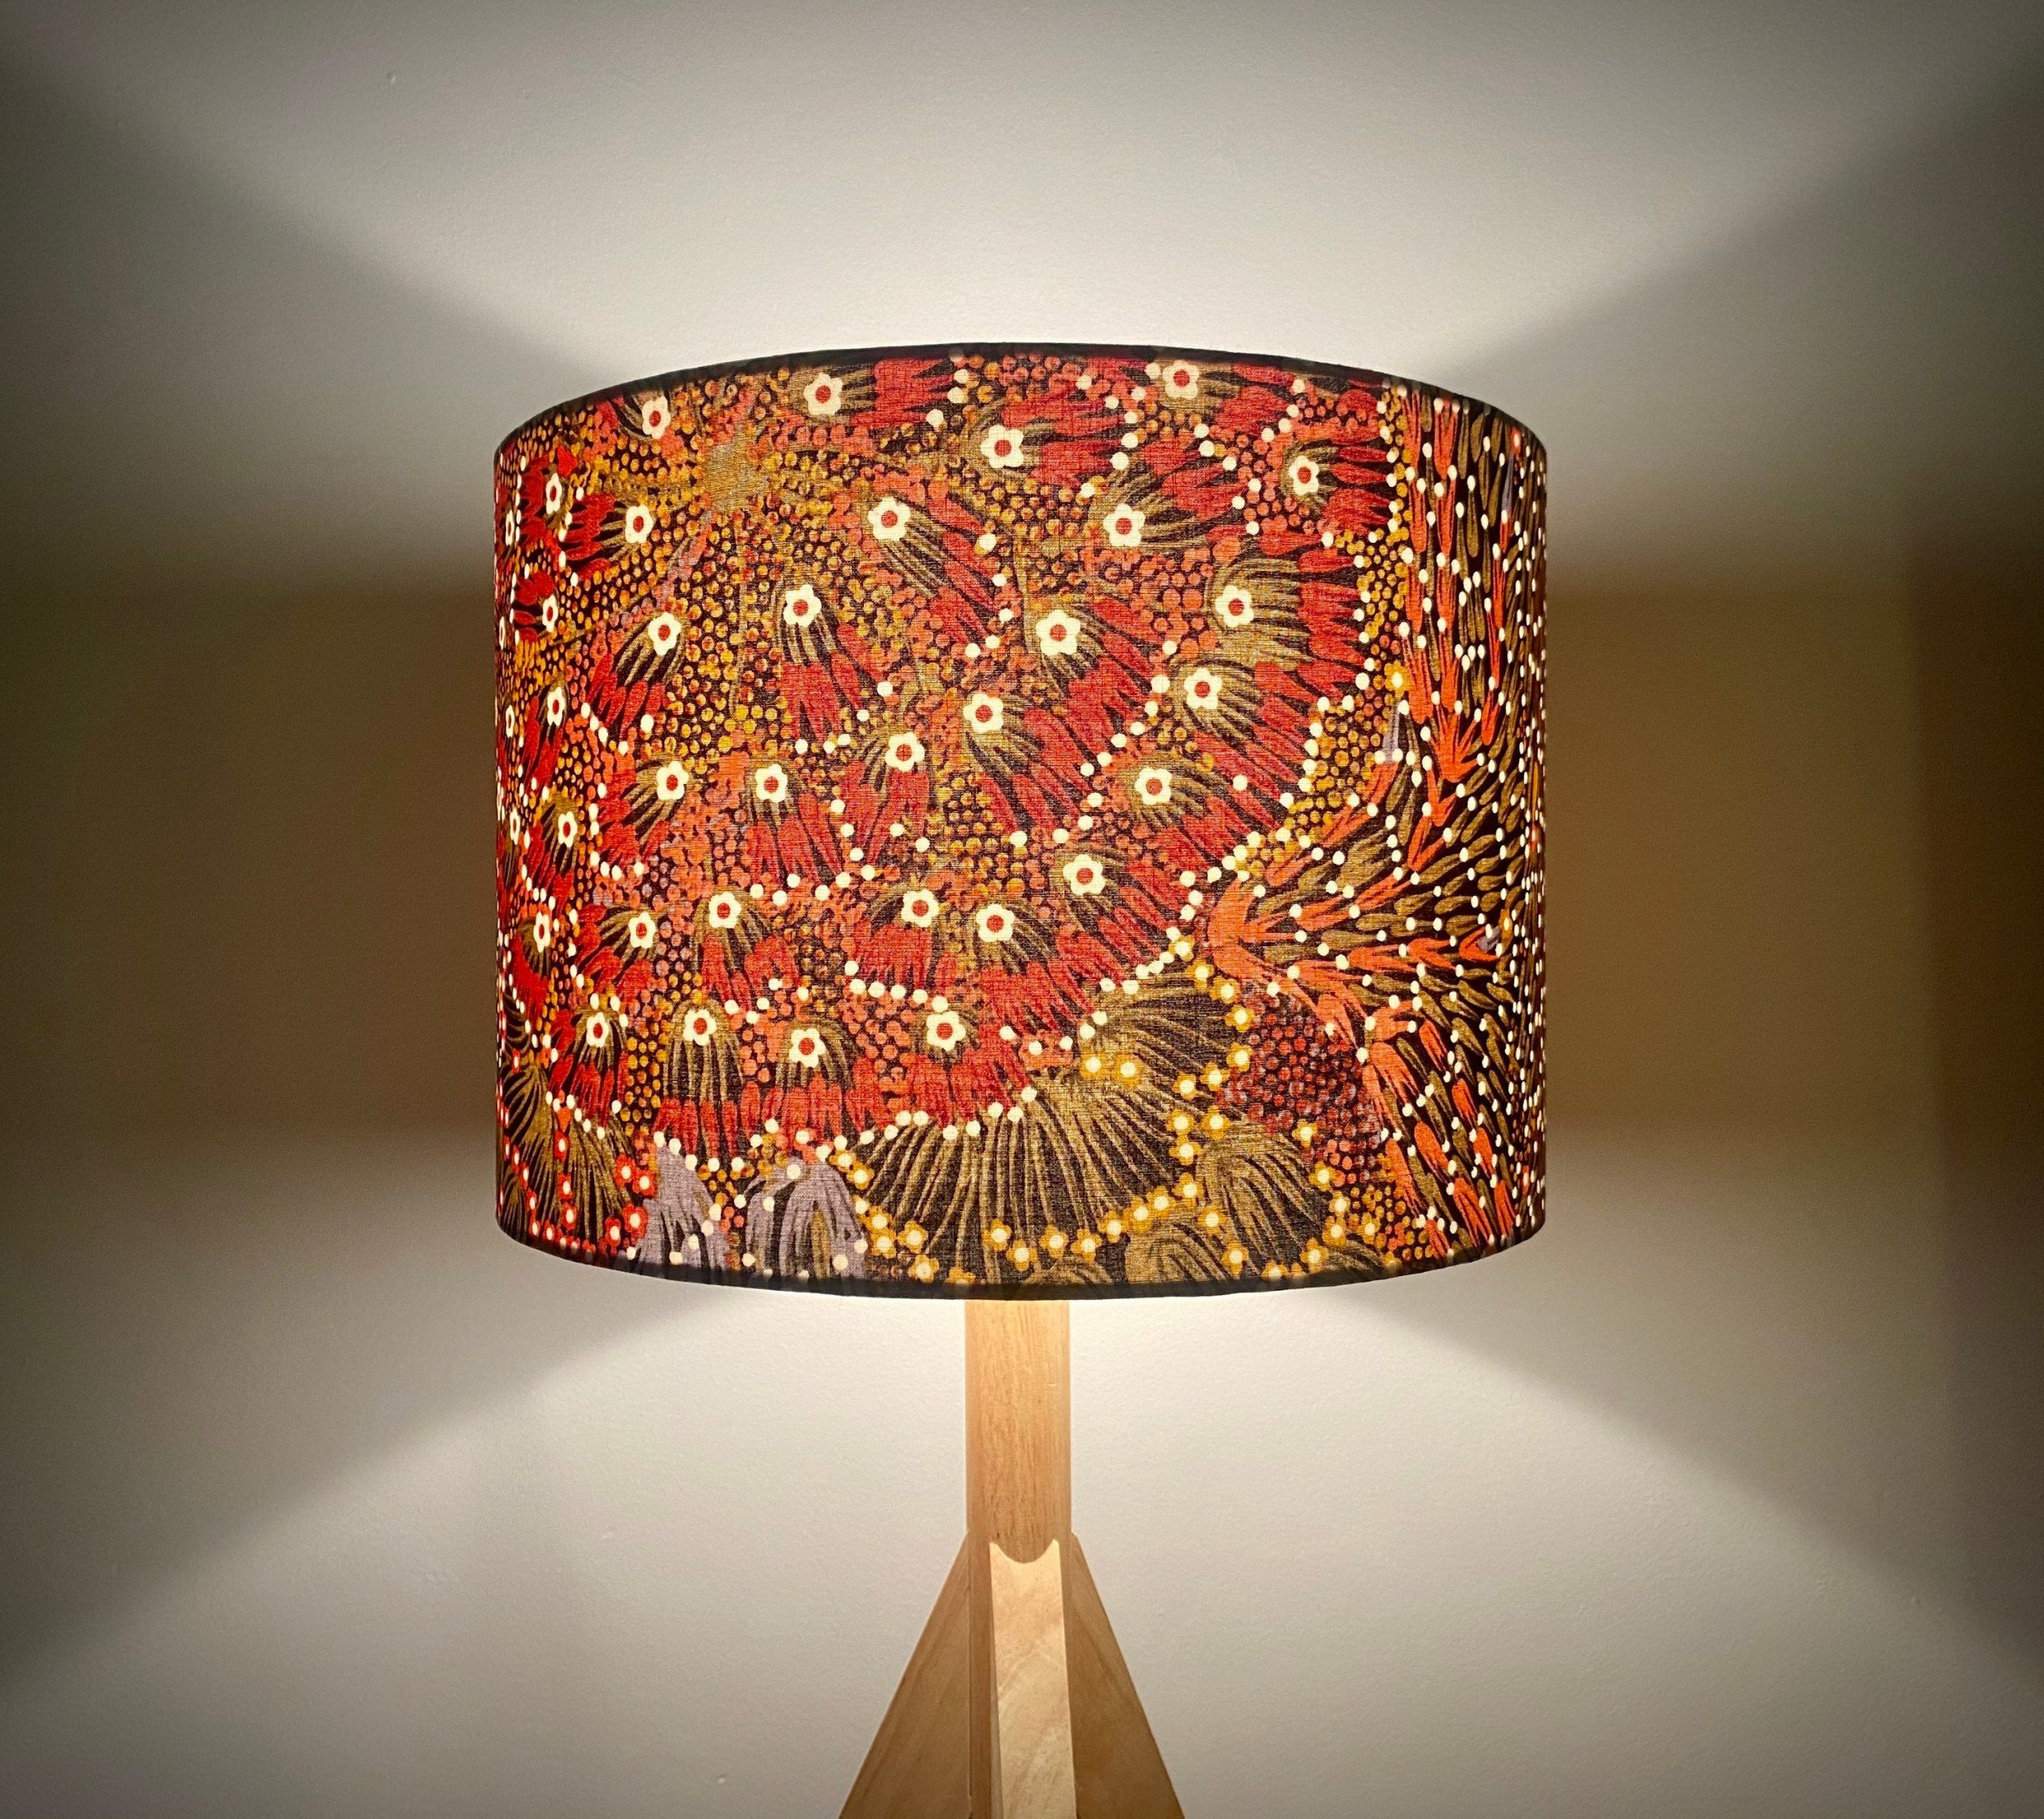 Bush Banana Aboriginal Lampshade Hello Boho Handcrafted Lampshades Homewares Home Decor